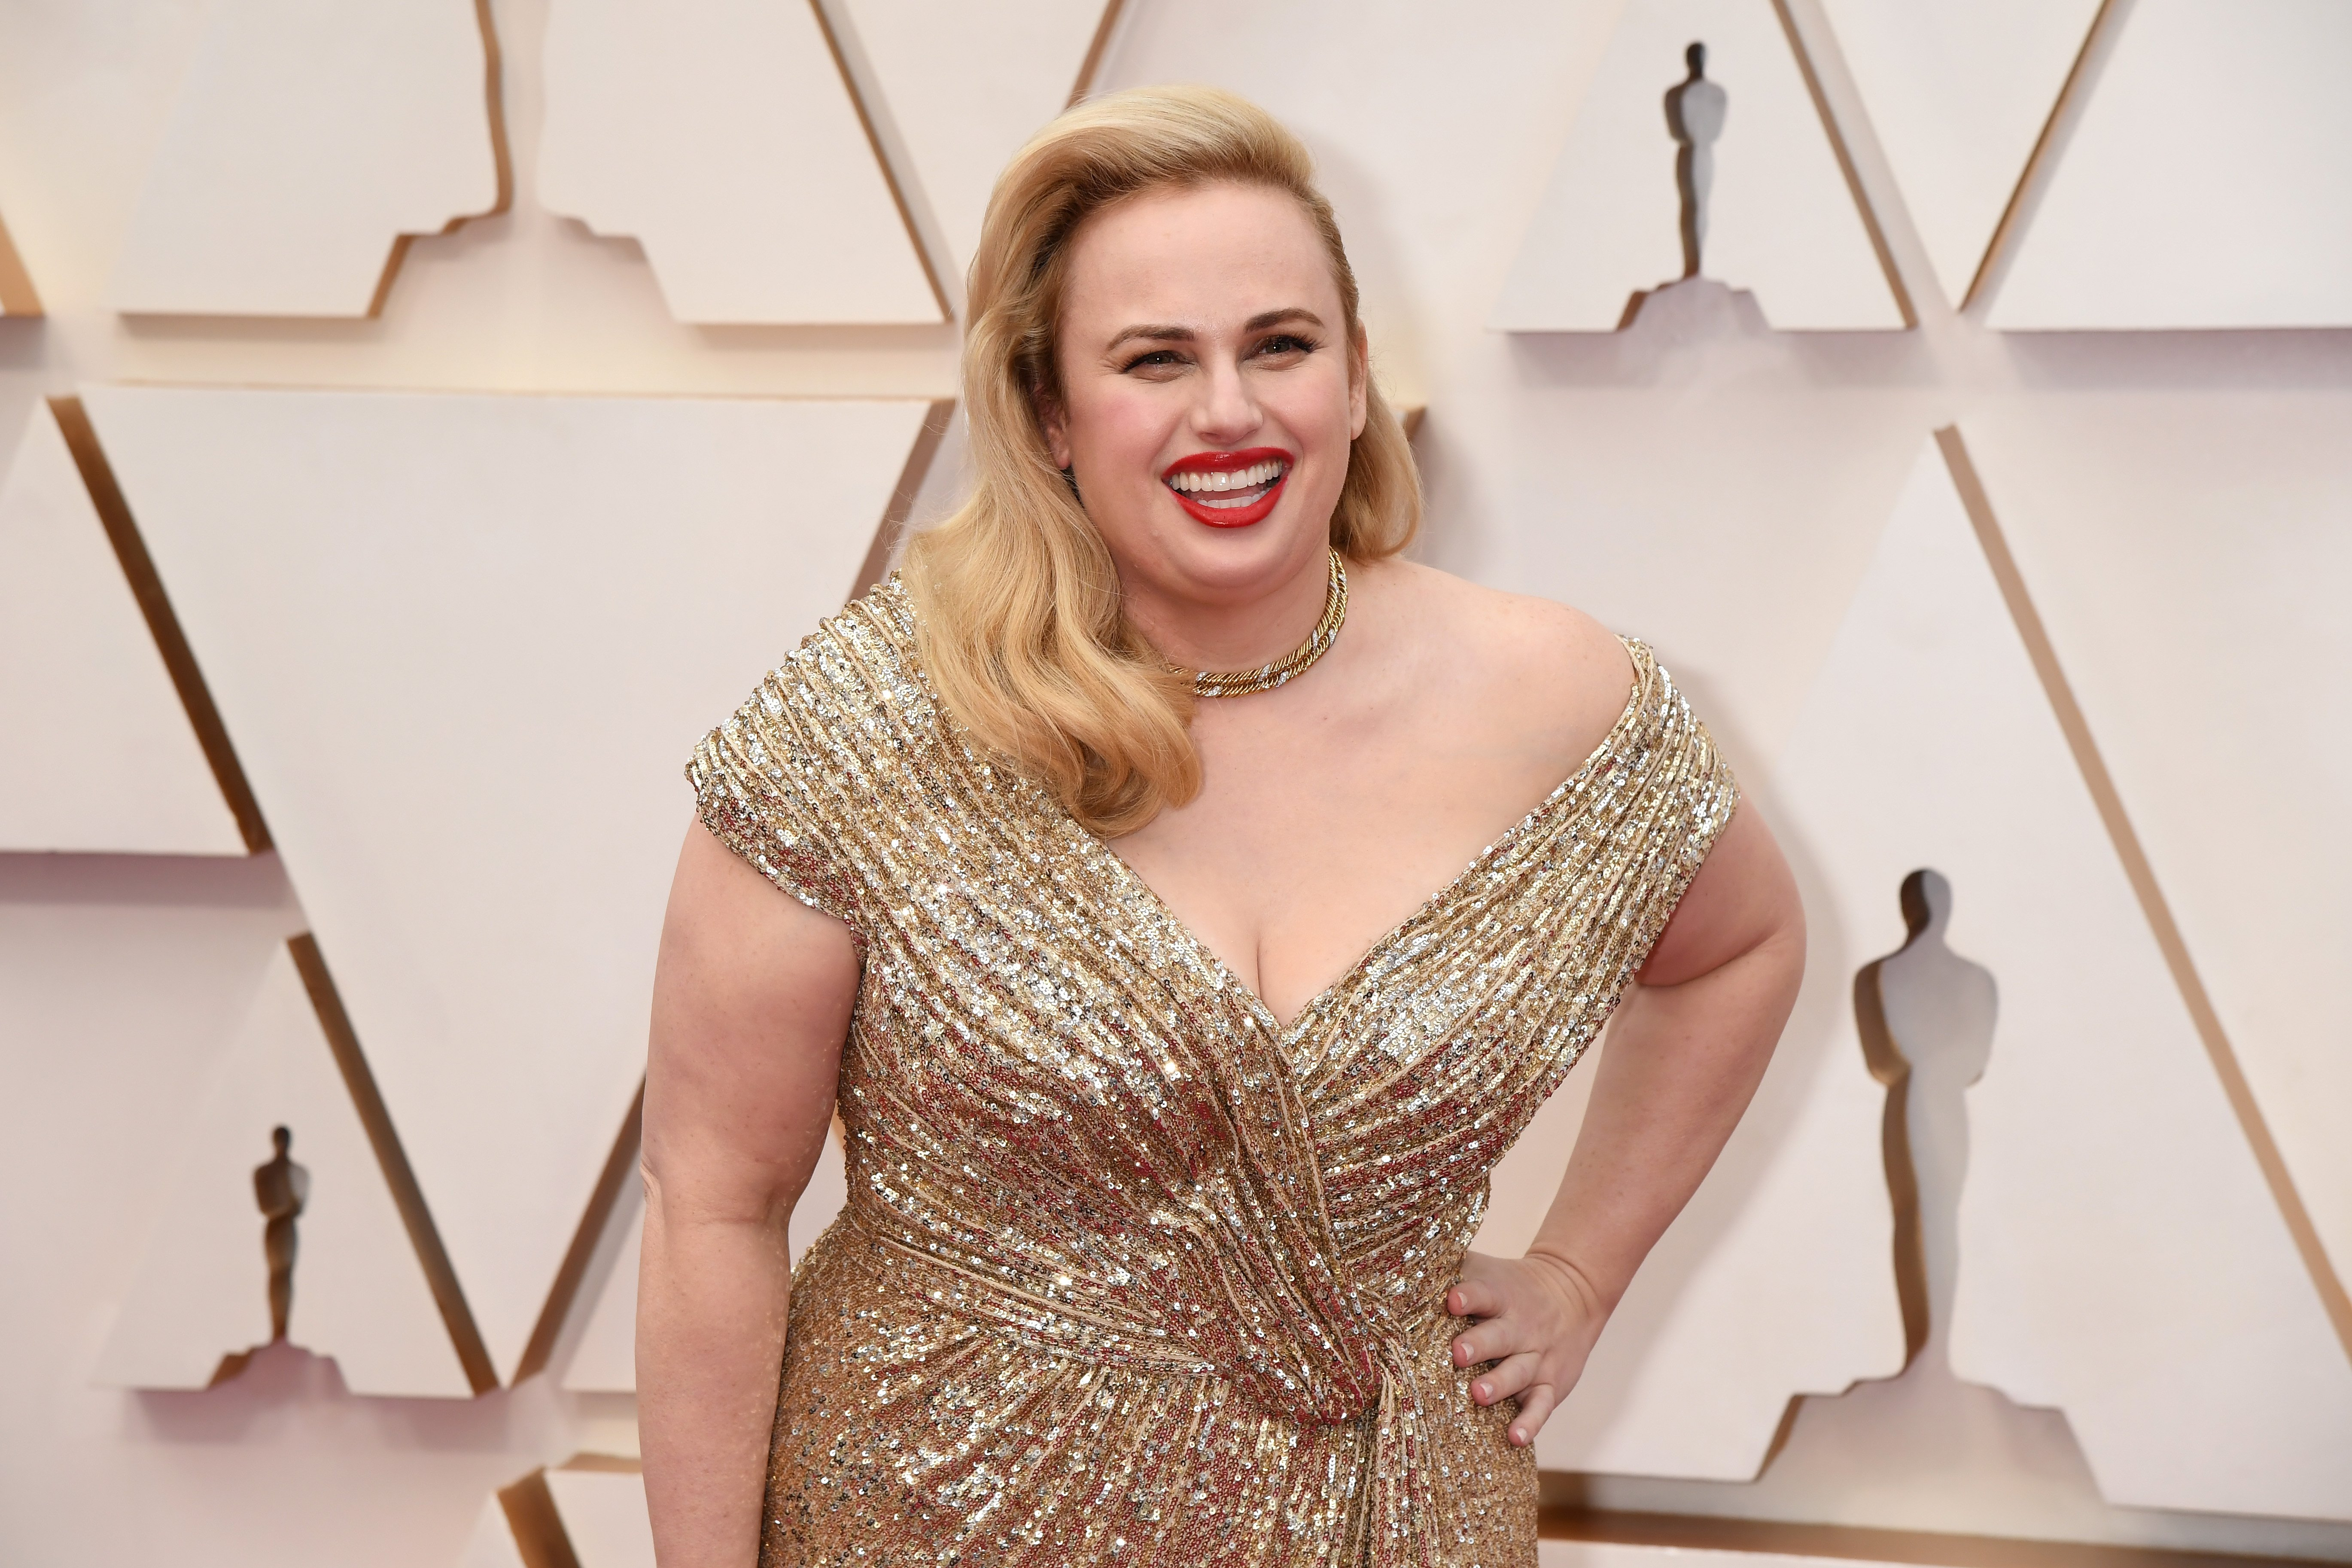 Image Credit: Getty Images/FilmMagic/Jeff Kravits | Rebel Wilson attends the 92nd Annual Academy Awards at Hollywood and Highland